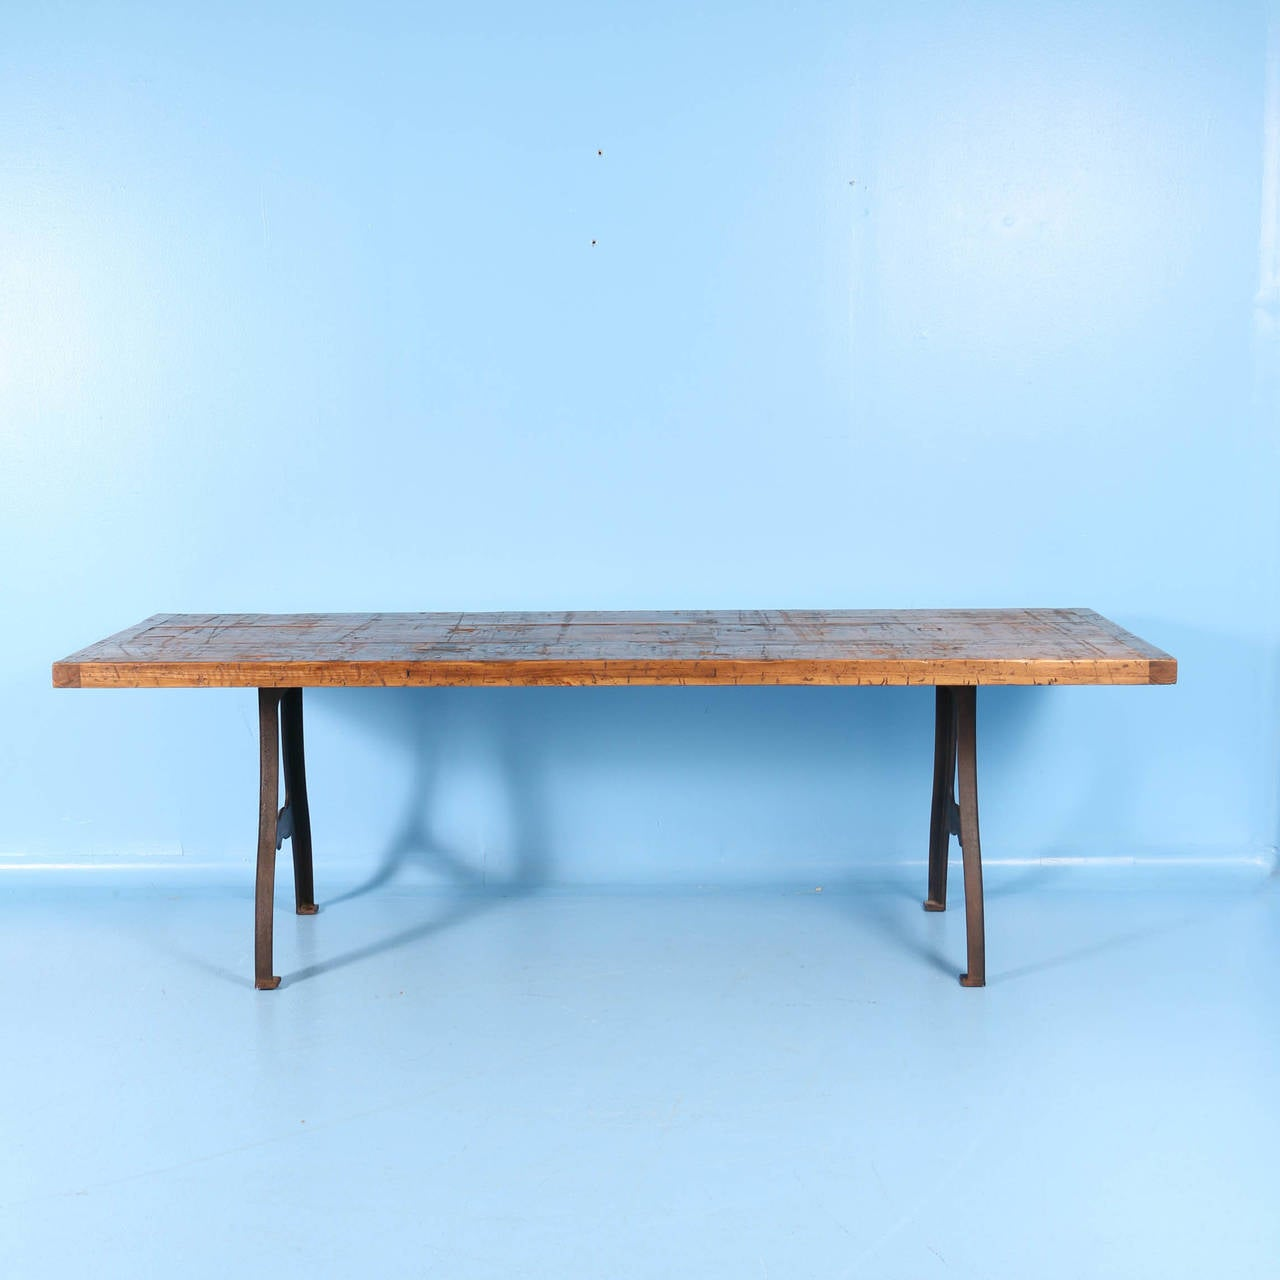 Vintage Industrial Look Dining Table from Reclaimed Wood  : IMG6566l from www.1stdibs.com size 1280 x 1280 jpeg 63kB